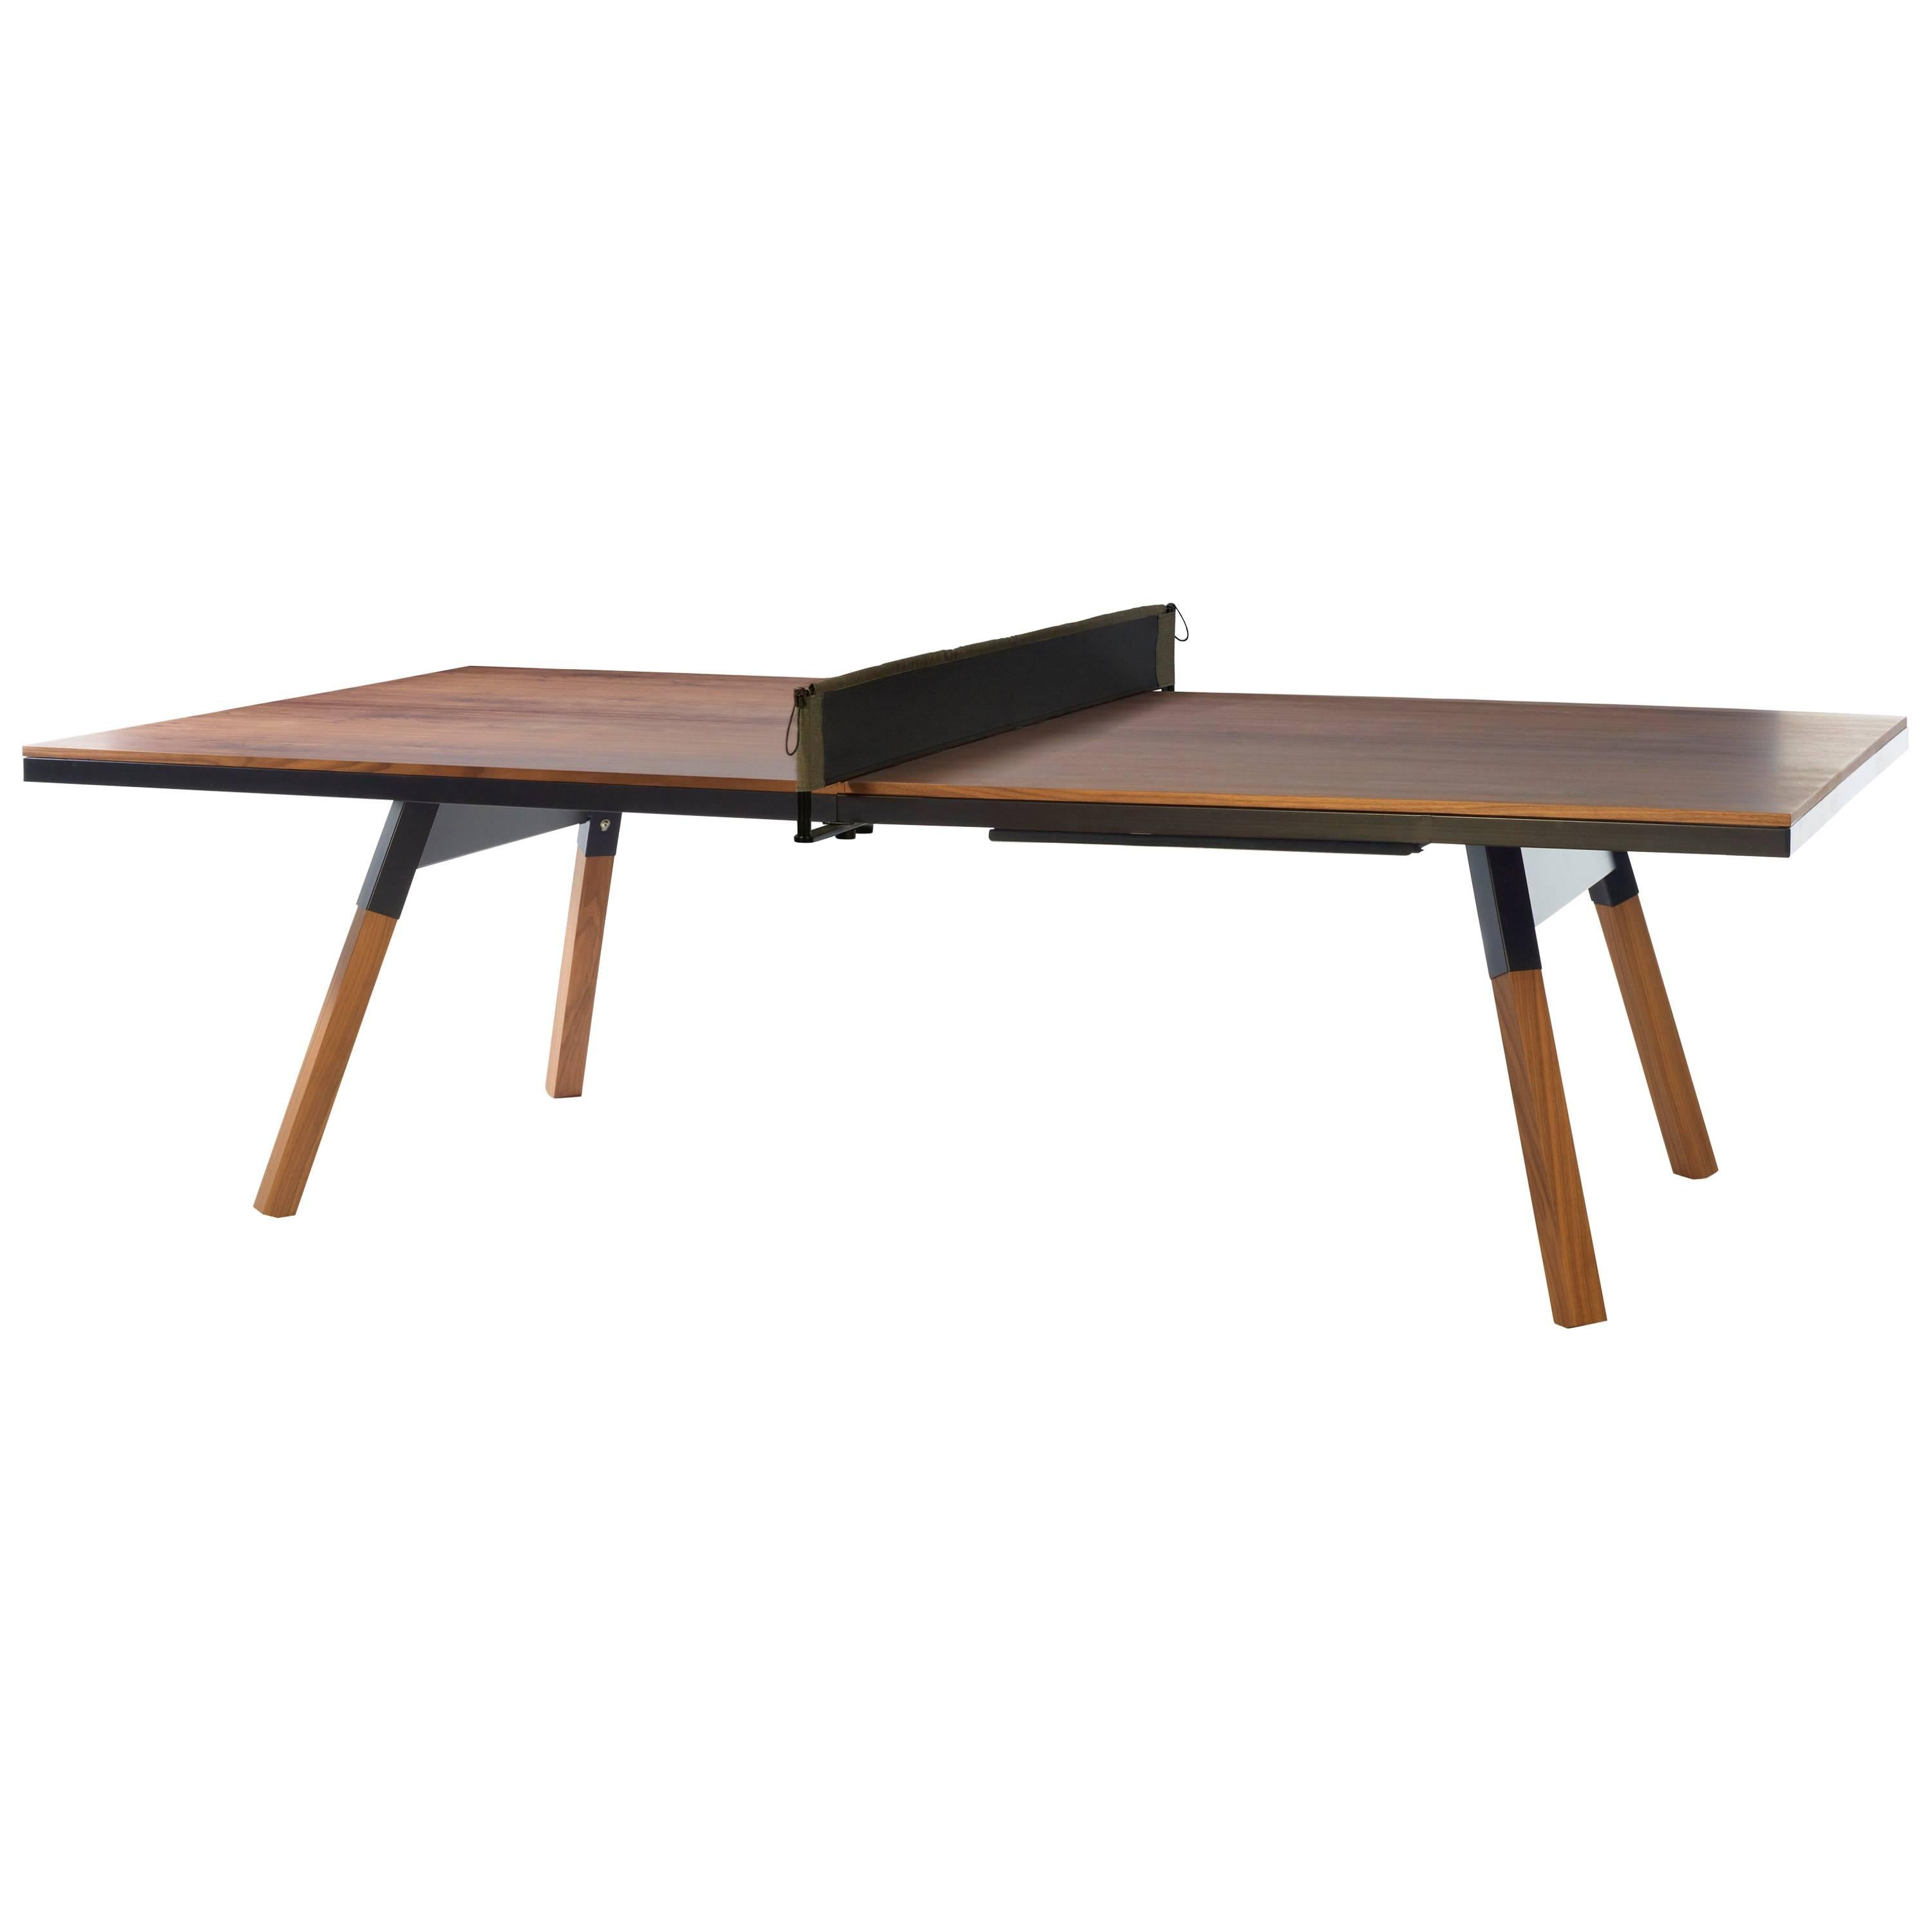 You & Me Wooden Top Standard Ping Pong Table in Walnut and Black by RS Barcelona